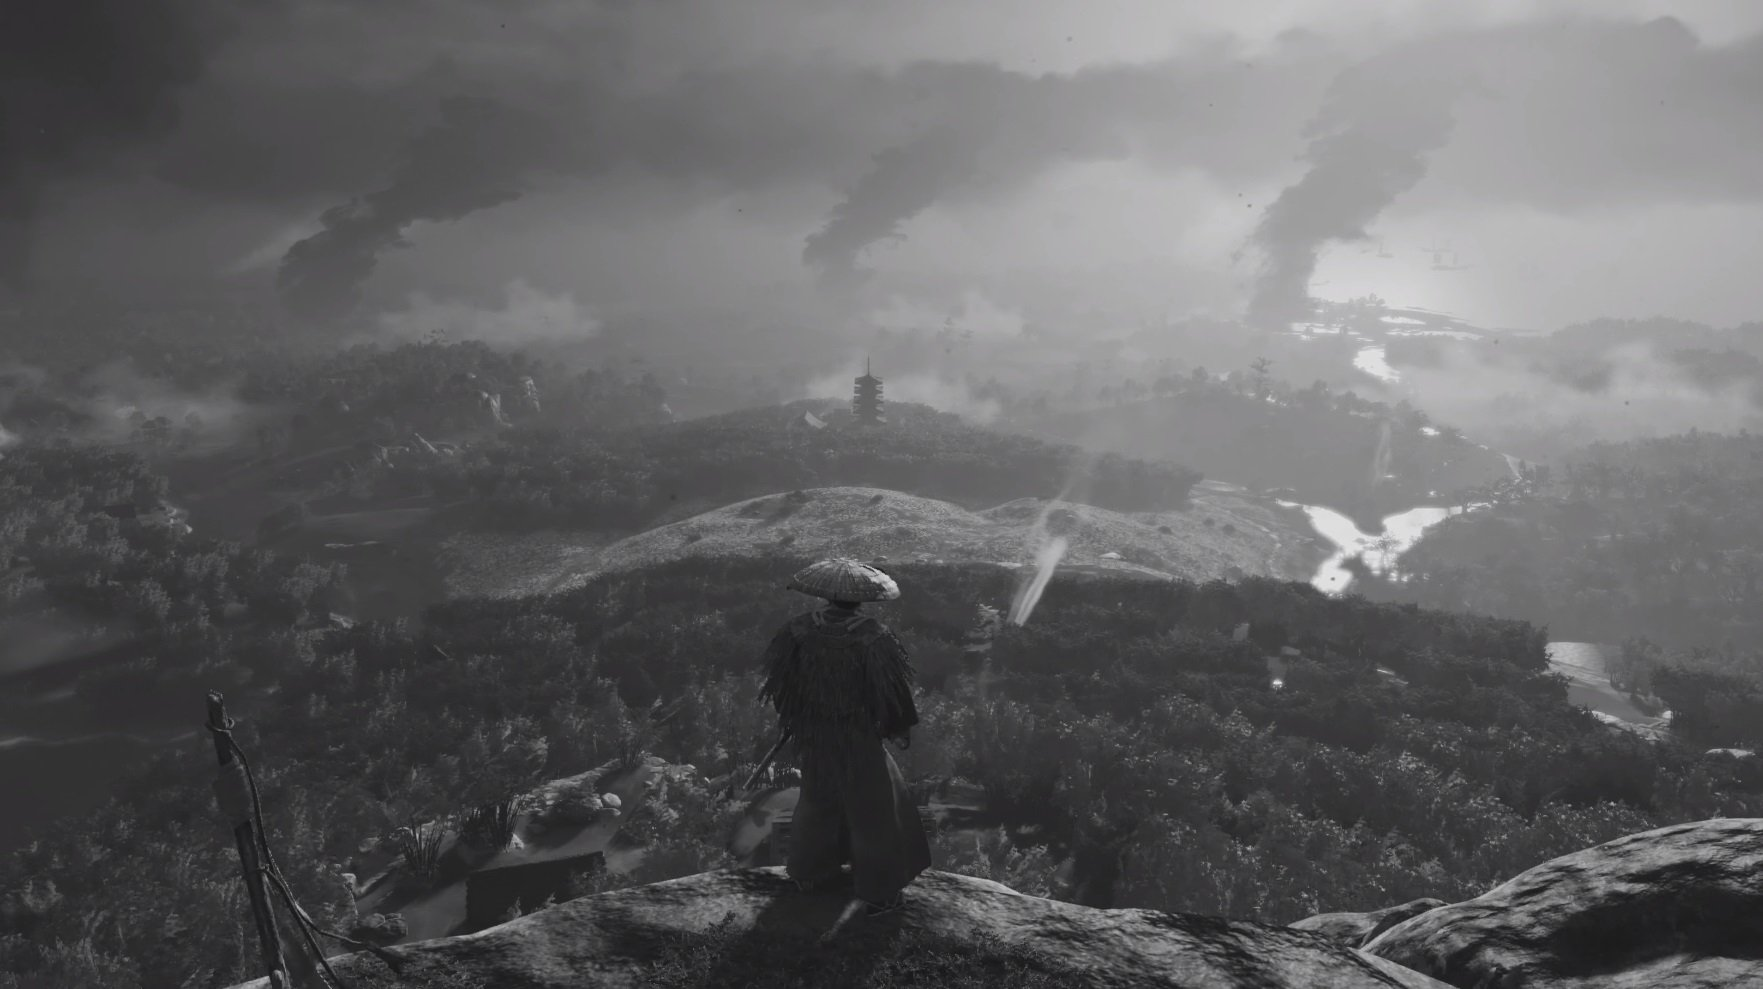 You can play Ghost of Tsushima in black and white